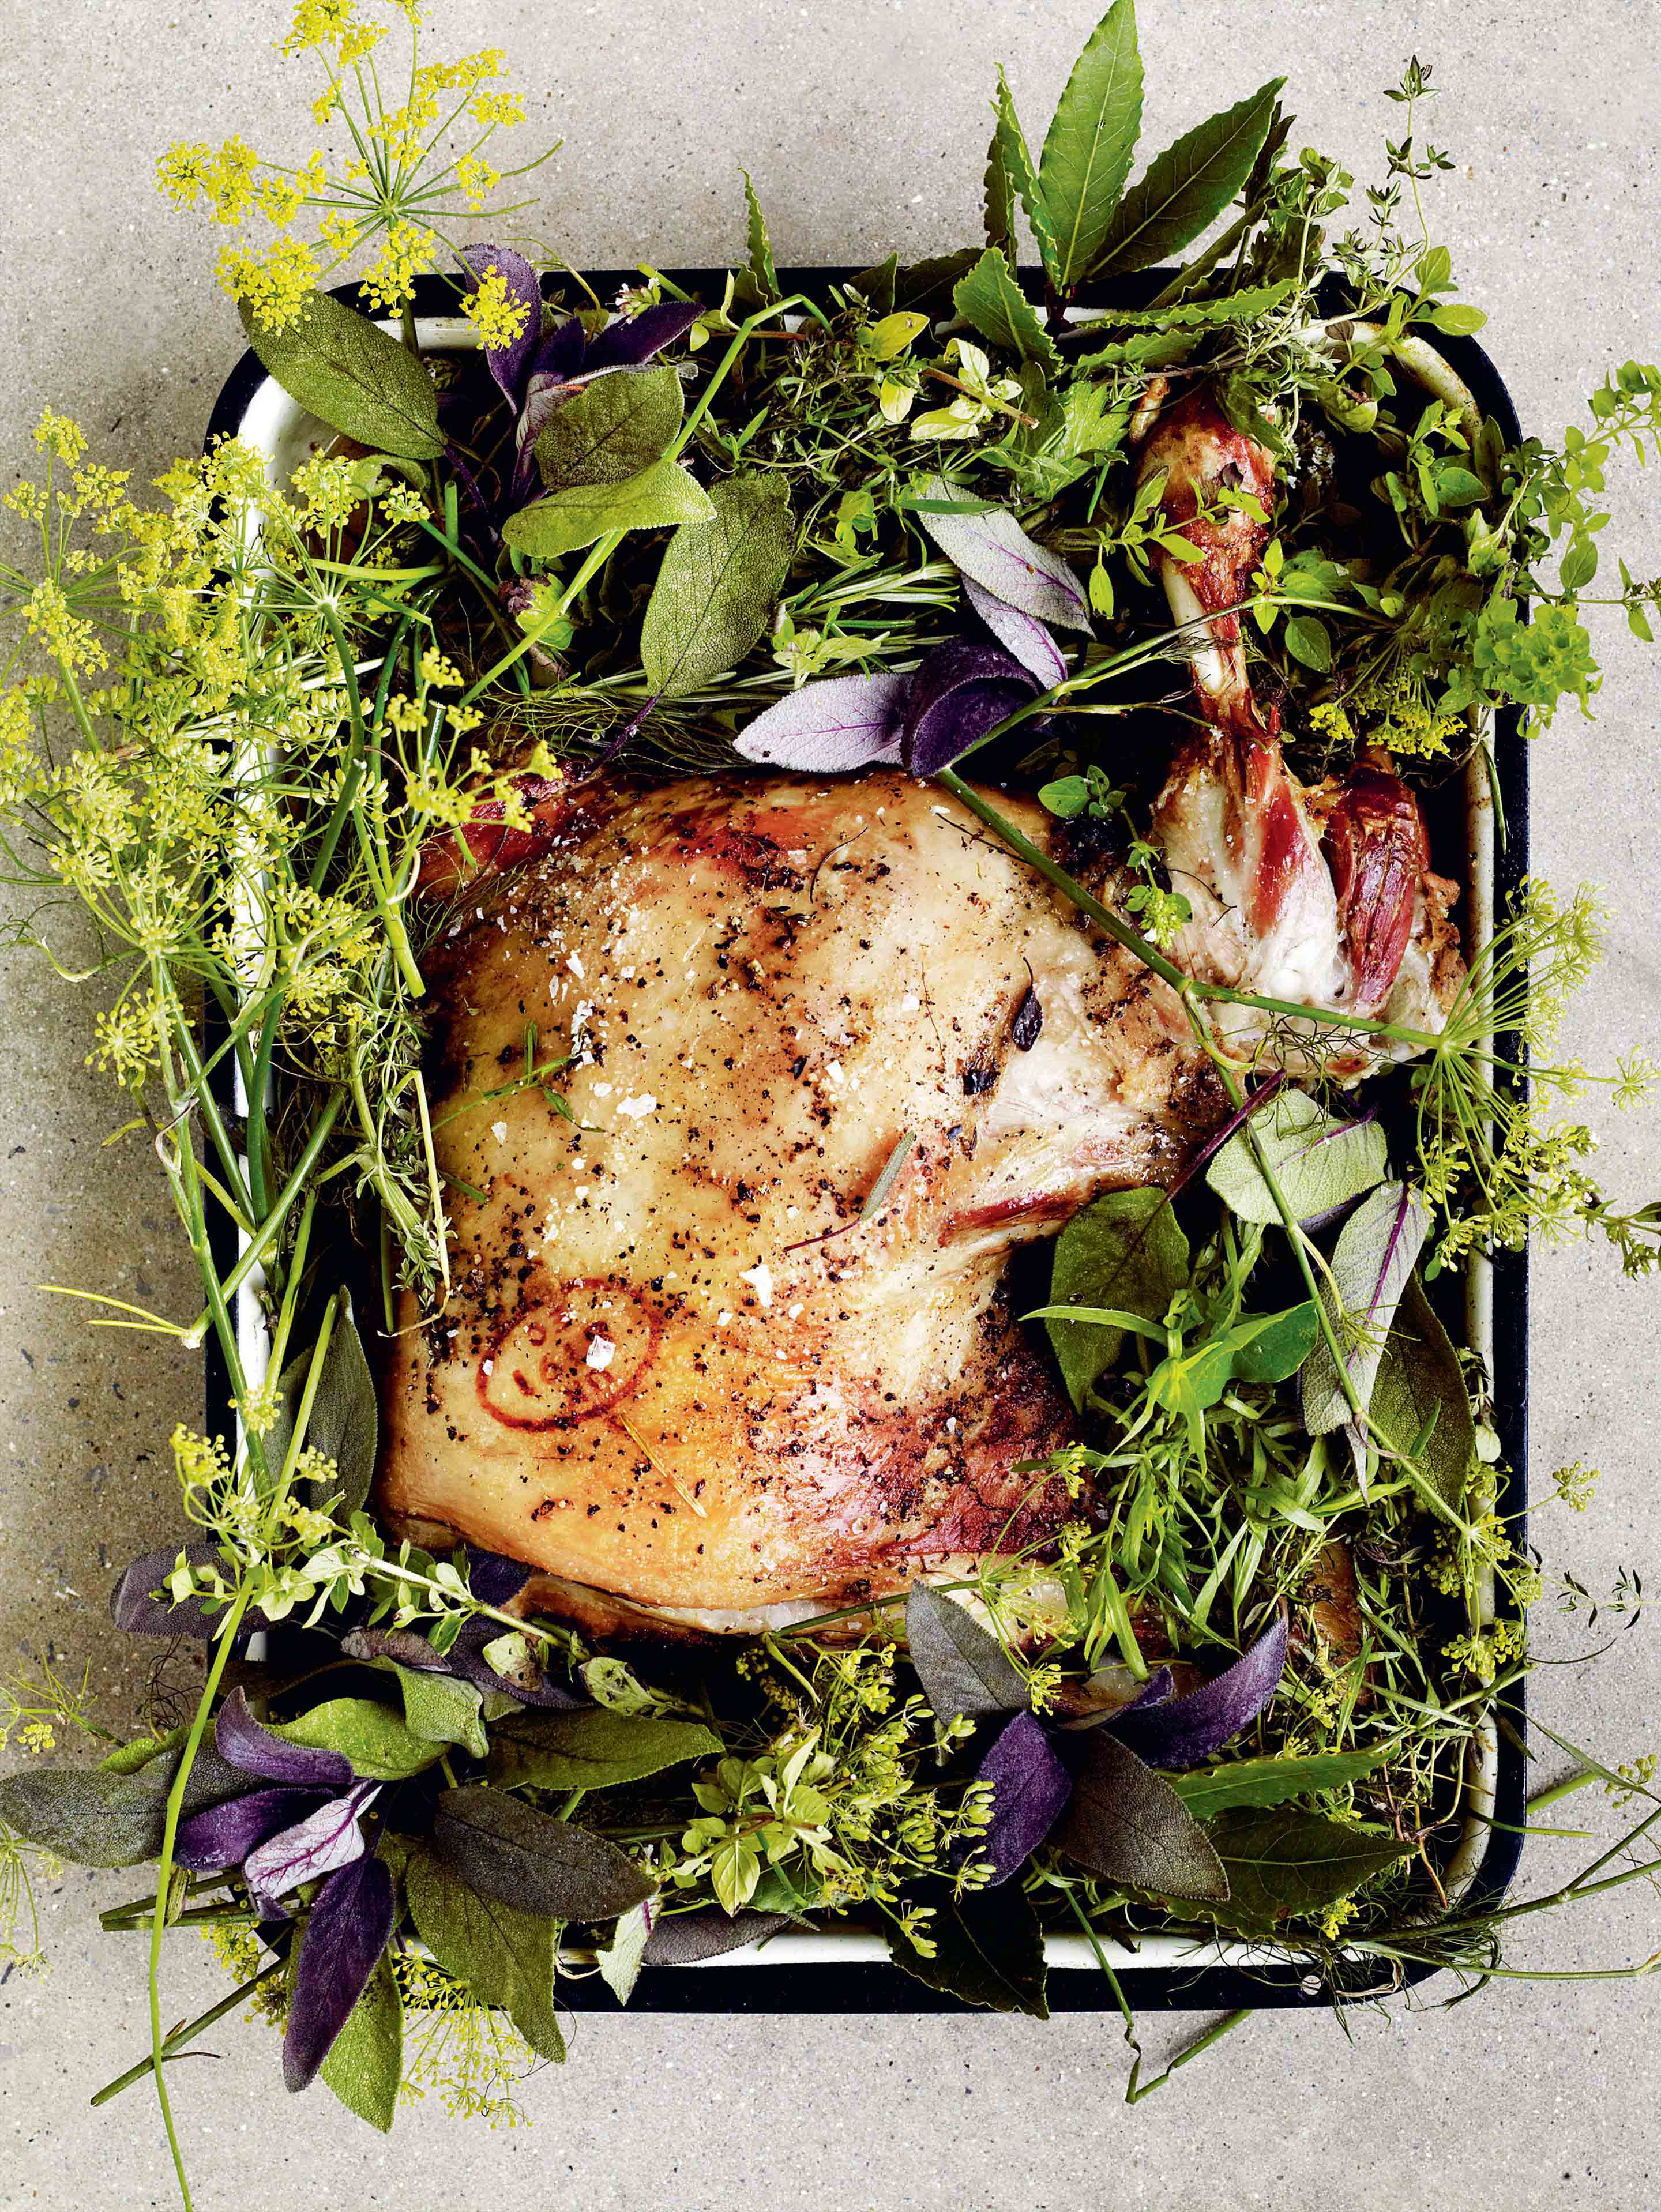 Slow-roast mutton shoulder with garden herbs